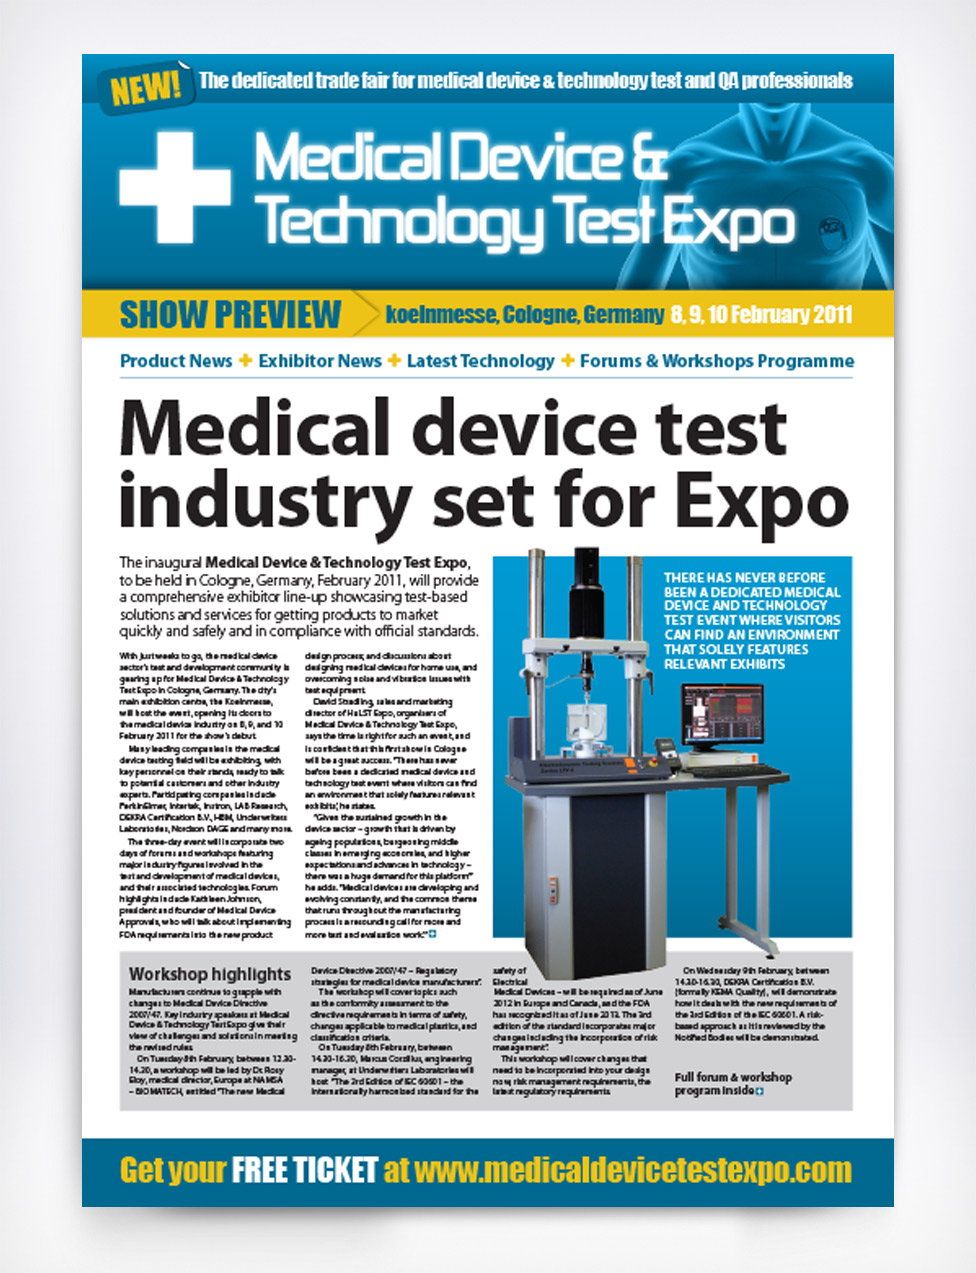 Medical Device & Technology Test Expo Show Preview Paper